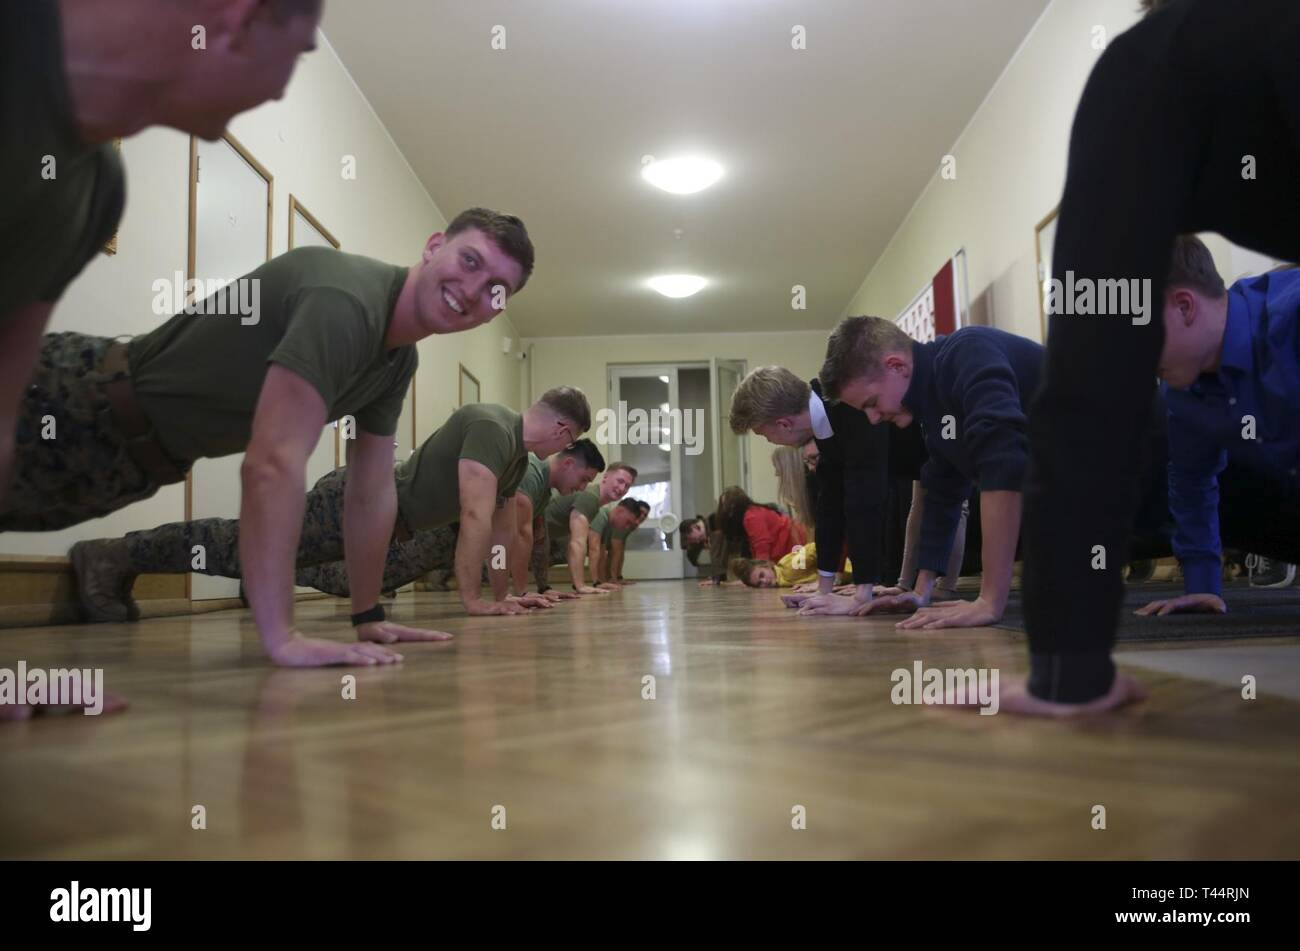 U.S. Marines with Fleet Anti-terrorism Security Team-Europe lead high school students in an exercise routine to demonstrate the importance of health and fitness at at Jakob Westholmi Gymnasium, Tallinn, Estonia, Feb. 21, 2019. Following Exercise Winter Camp 19, FAST-EUR Marines spent the week traveling across the country to meet with members of the local community in a series of civil-military outreach engagements designed to build shared understanding, promote our strong bilateral relationship, and celebrate 101 years of Estonian independence. (Marine Corps Europe and Africa Stock Photo